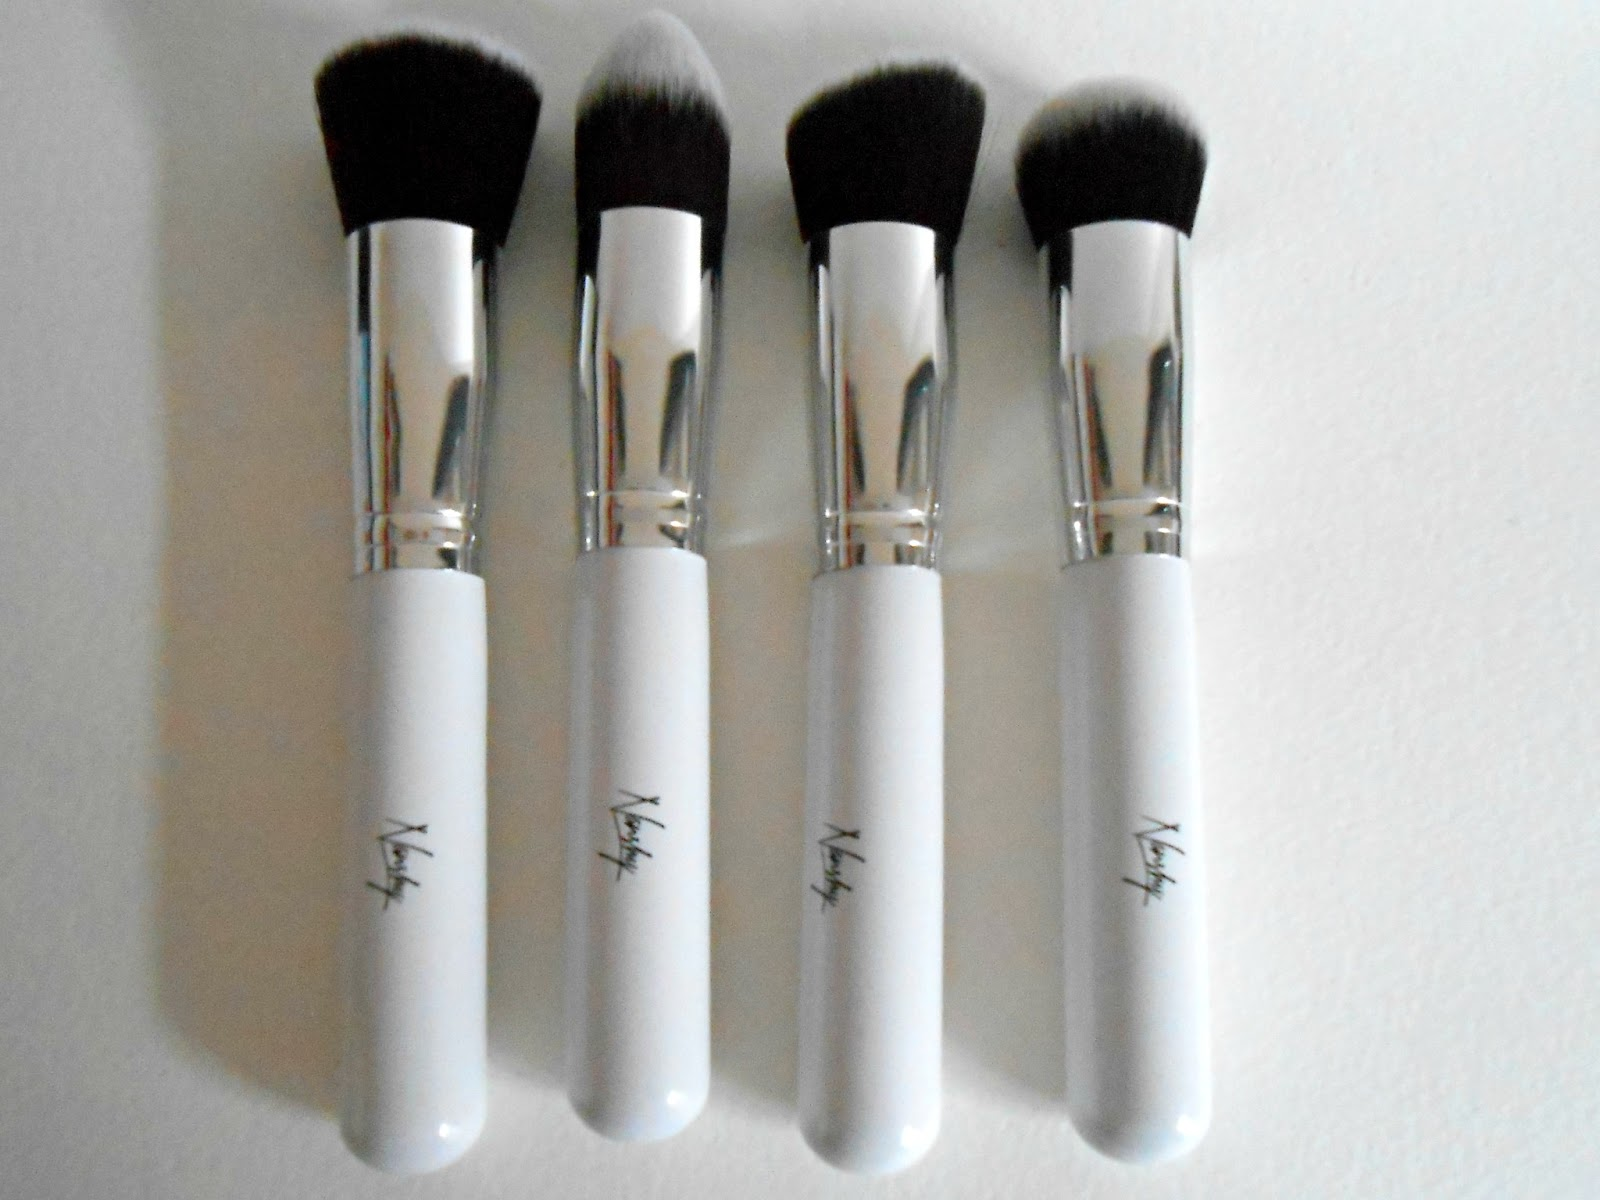 elf pointed foundation brush. the set contains four brushes, a flat top buffer brush, pointed foundation angled brush and round brush. elf